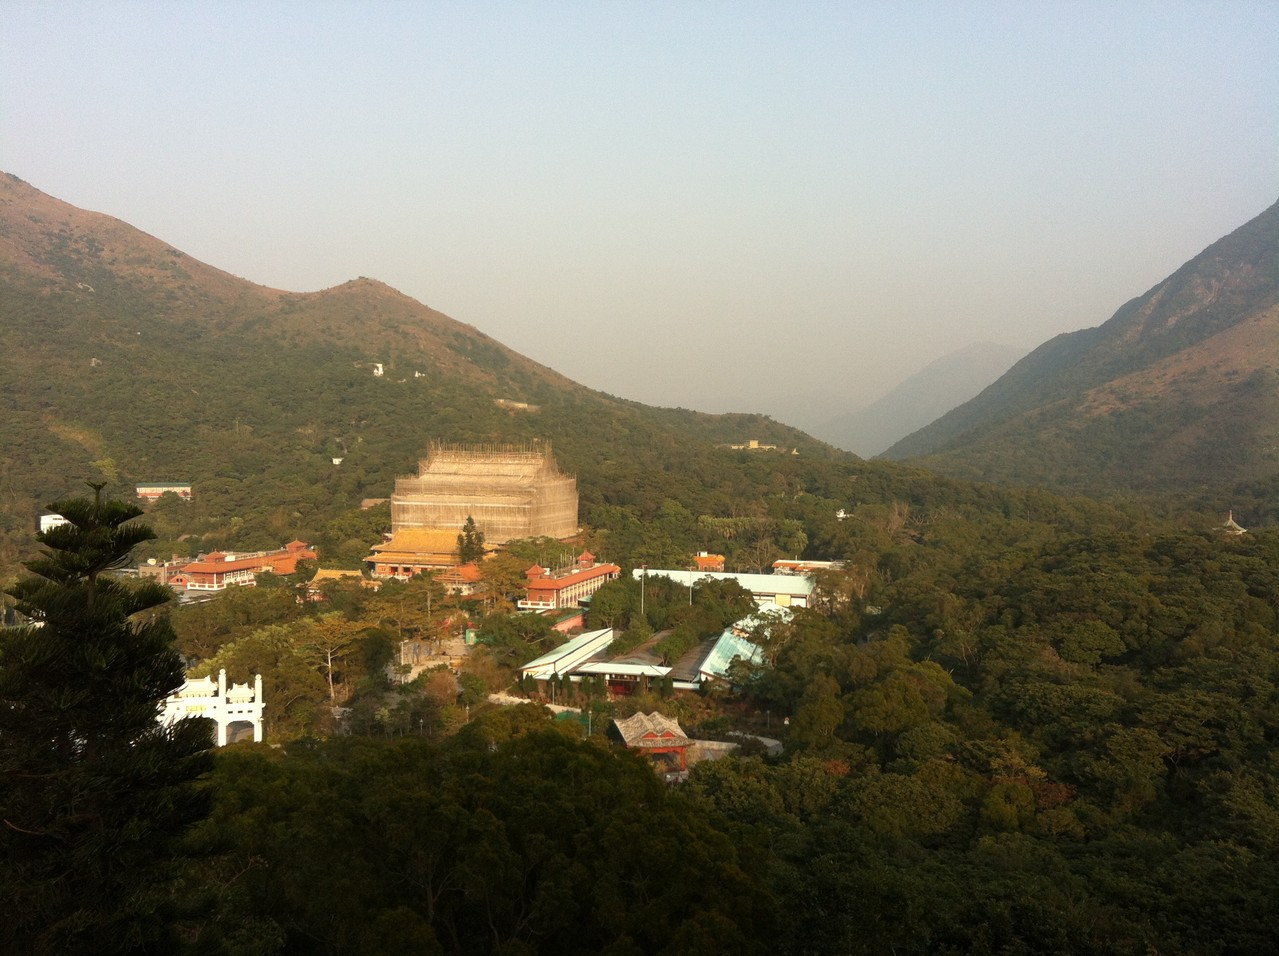 Across the hills is a temple being built/restored. Believe it or not the scaffolding you see is made from bamboo .. — at Ngong Ping 360.